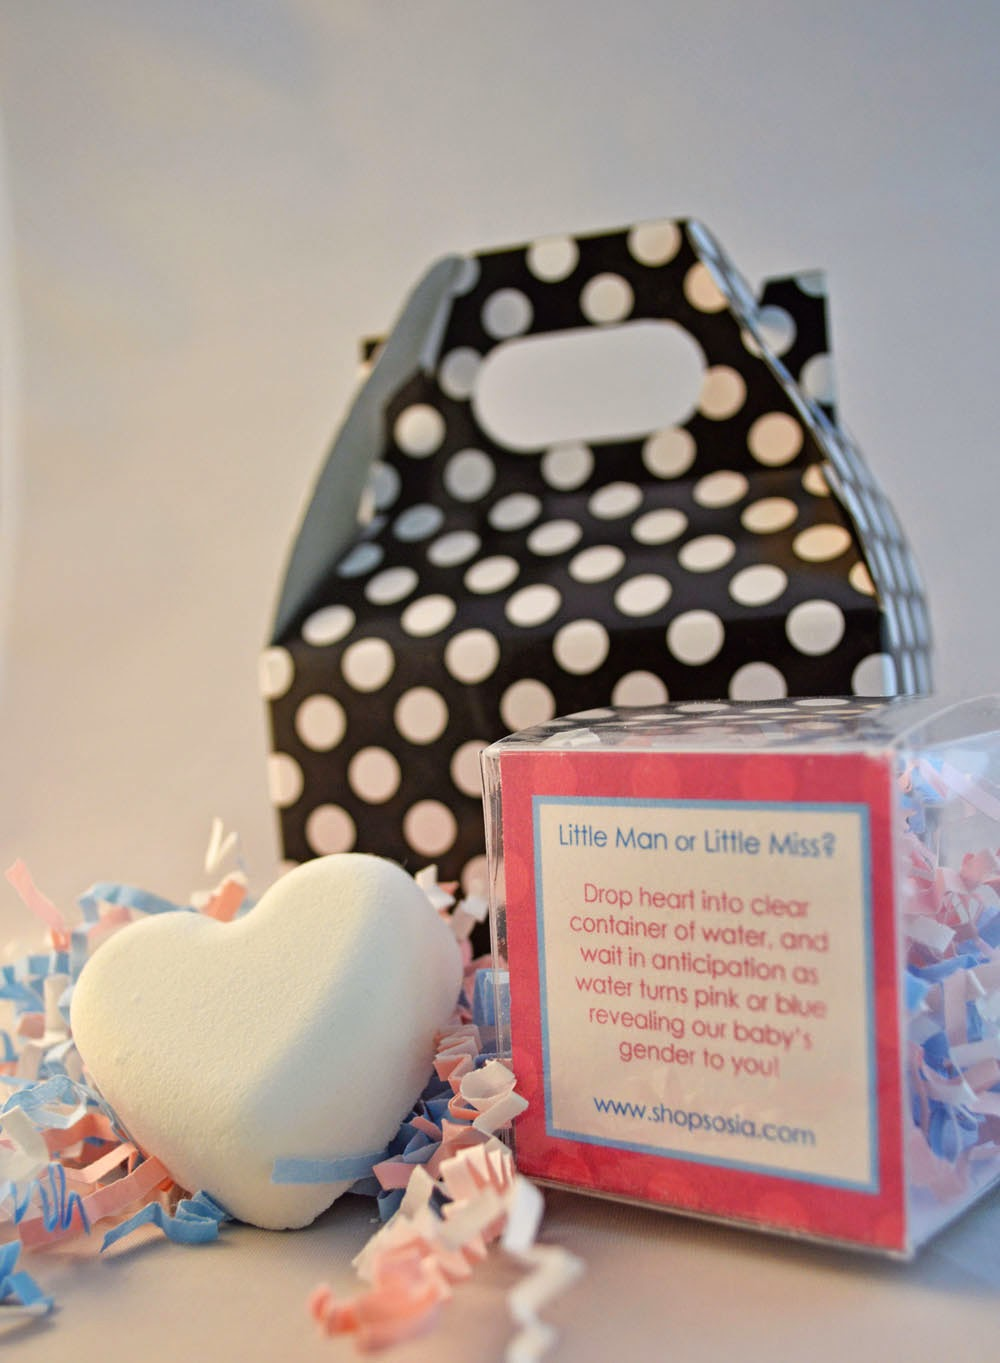 https://www.etsy.com/listing/181138082/gender-reveal-party-heart-shaped-reveal?ref=shop_home_active_11